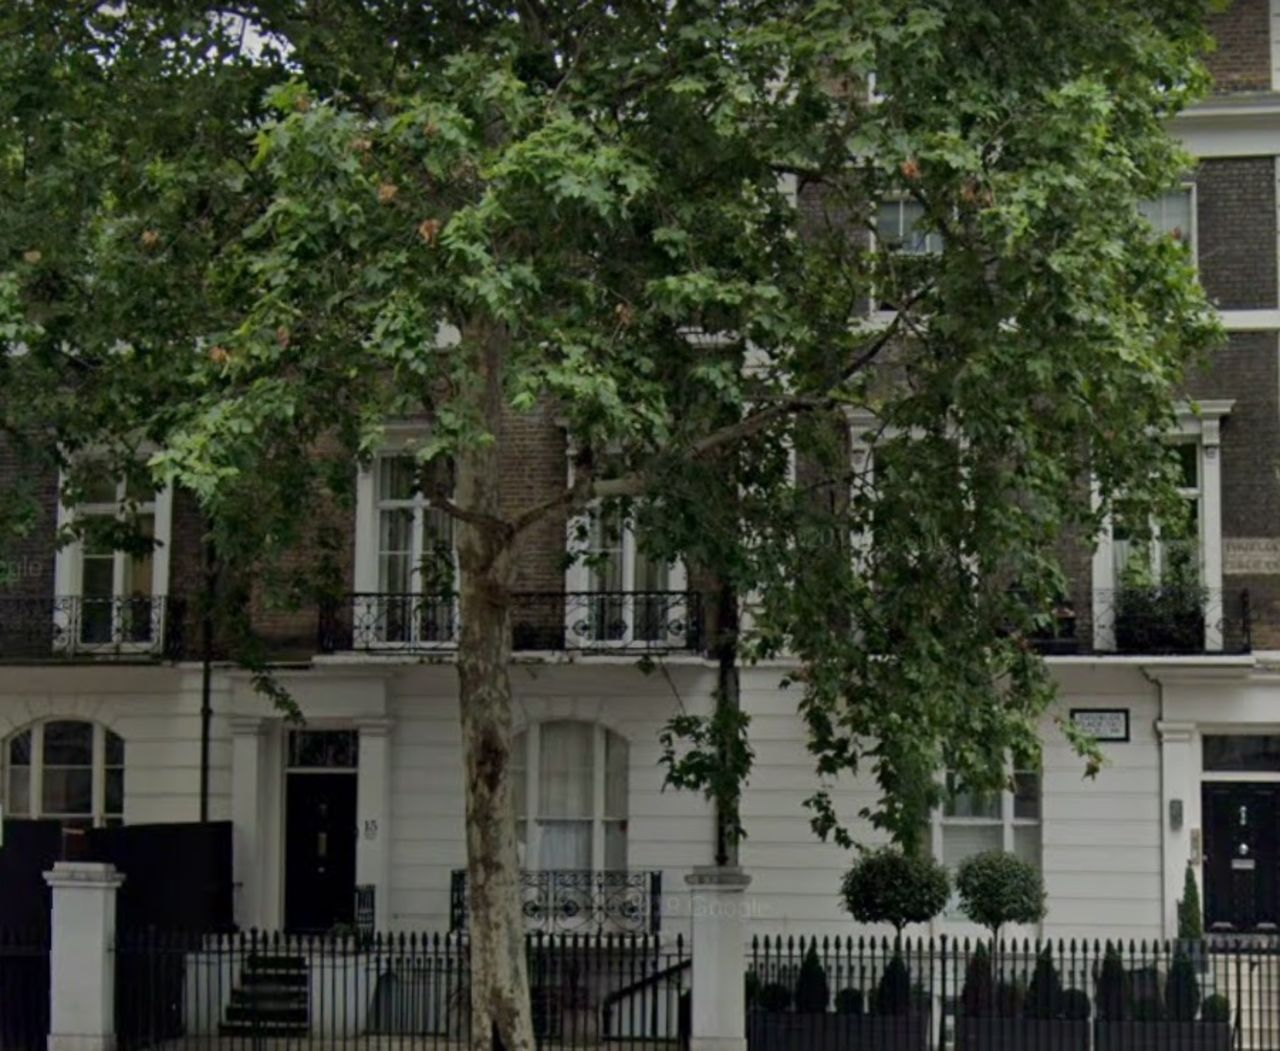 A terrace of houses in London, behind large trees, with the balcony adoring them.